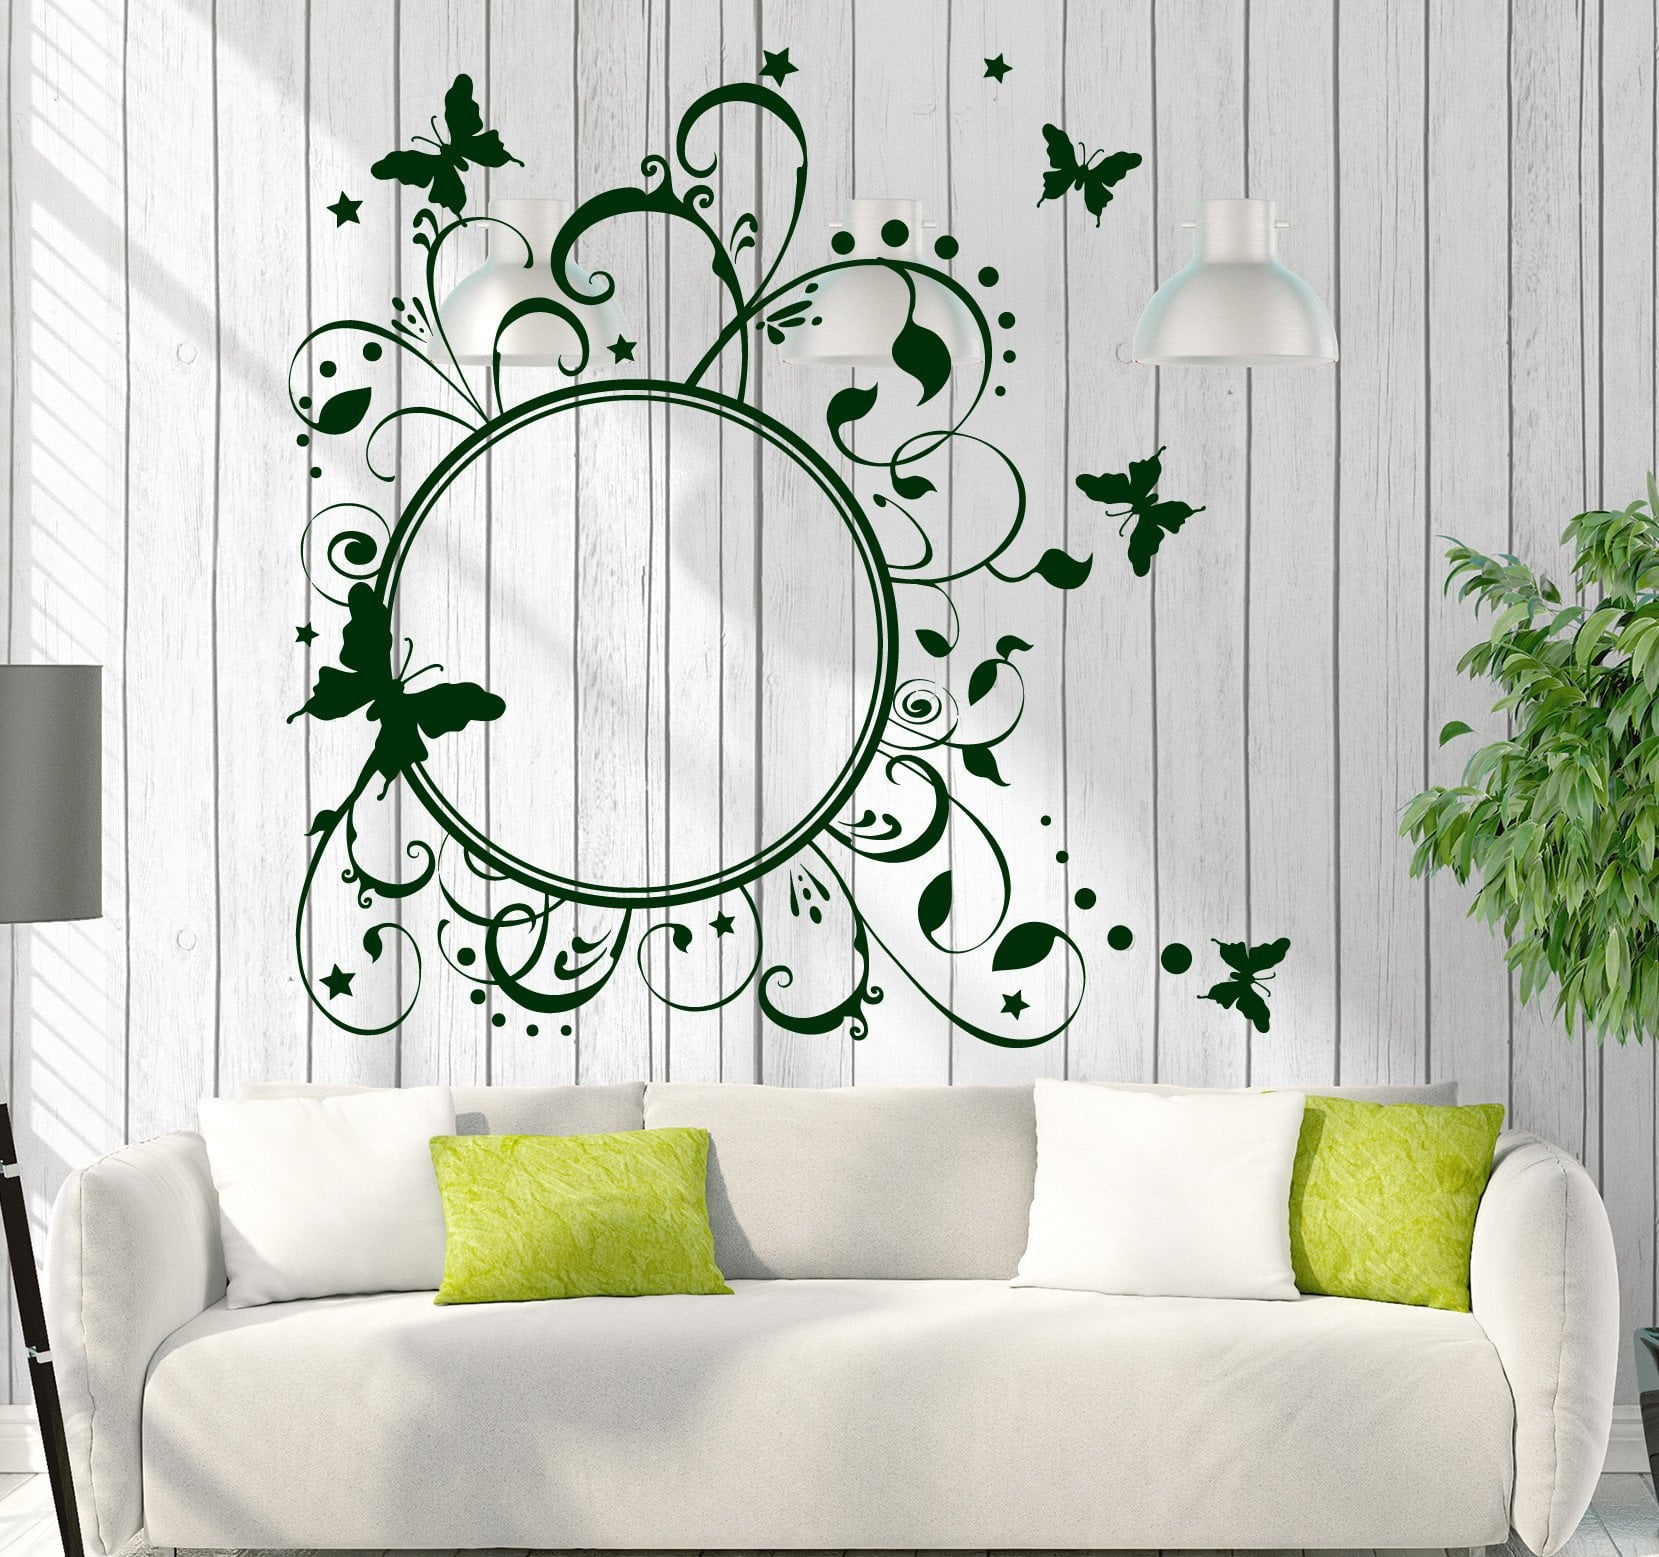 Vinyl Decal Wall Sticker Round Butterfly Frame Floral Pattern Studio Art Unique Gift (n745)